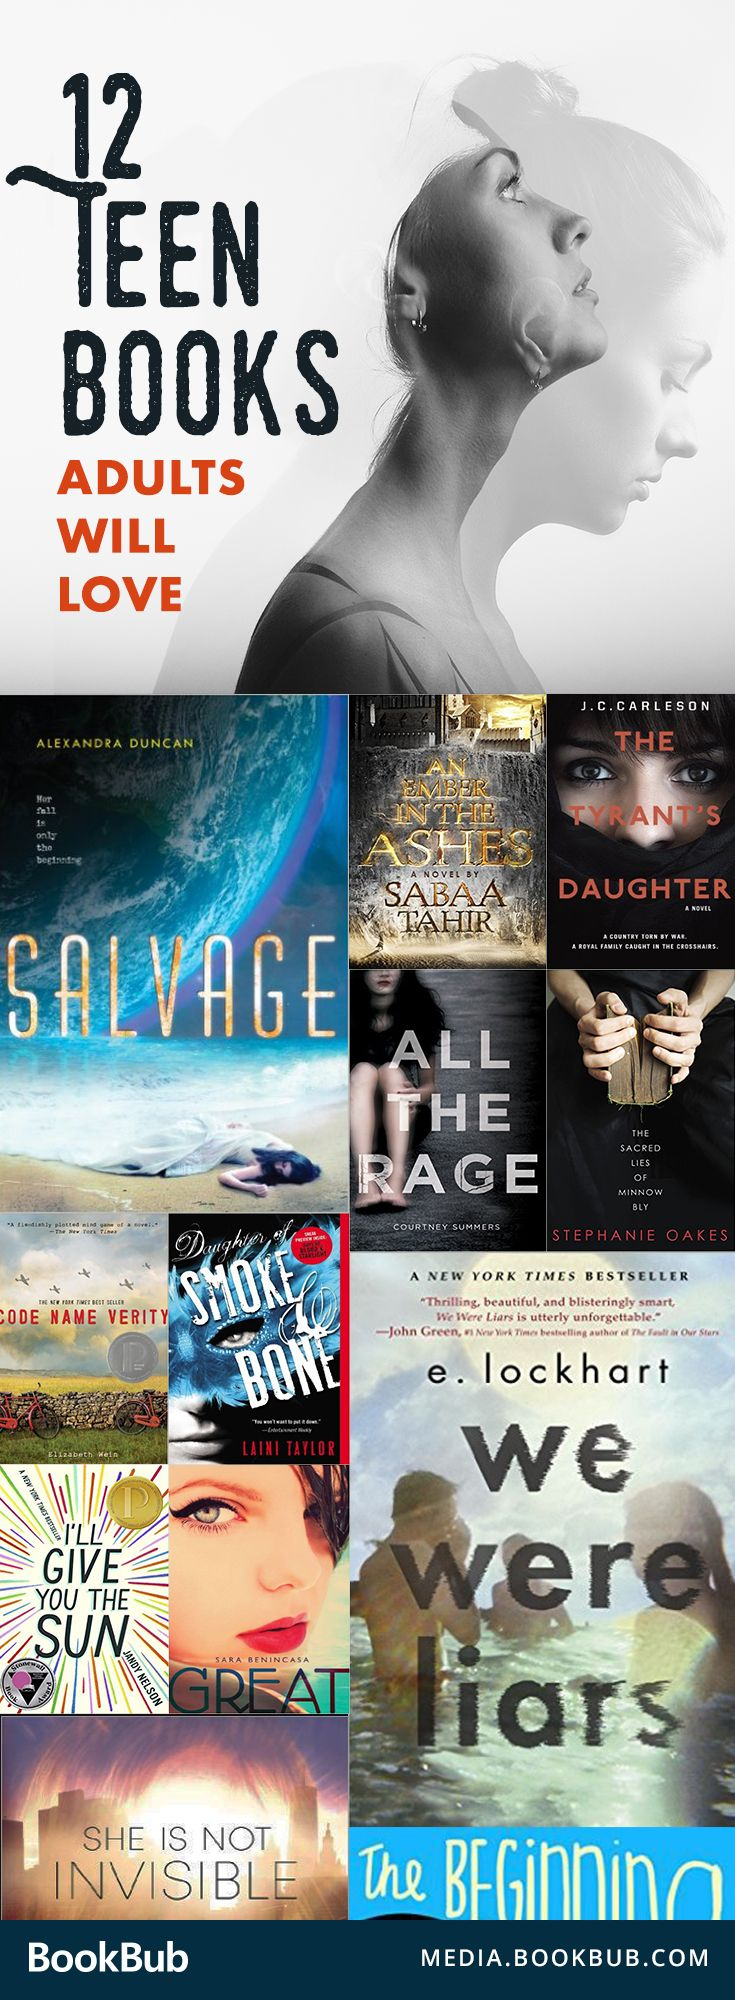 12 books for teens and young adult books that adults will love, too. Including fantasy, science fiction, and more for both boys and girls.